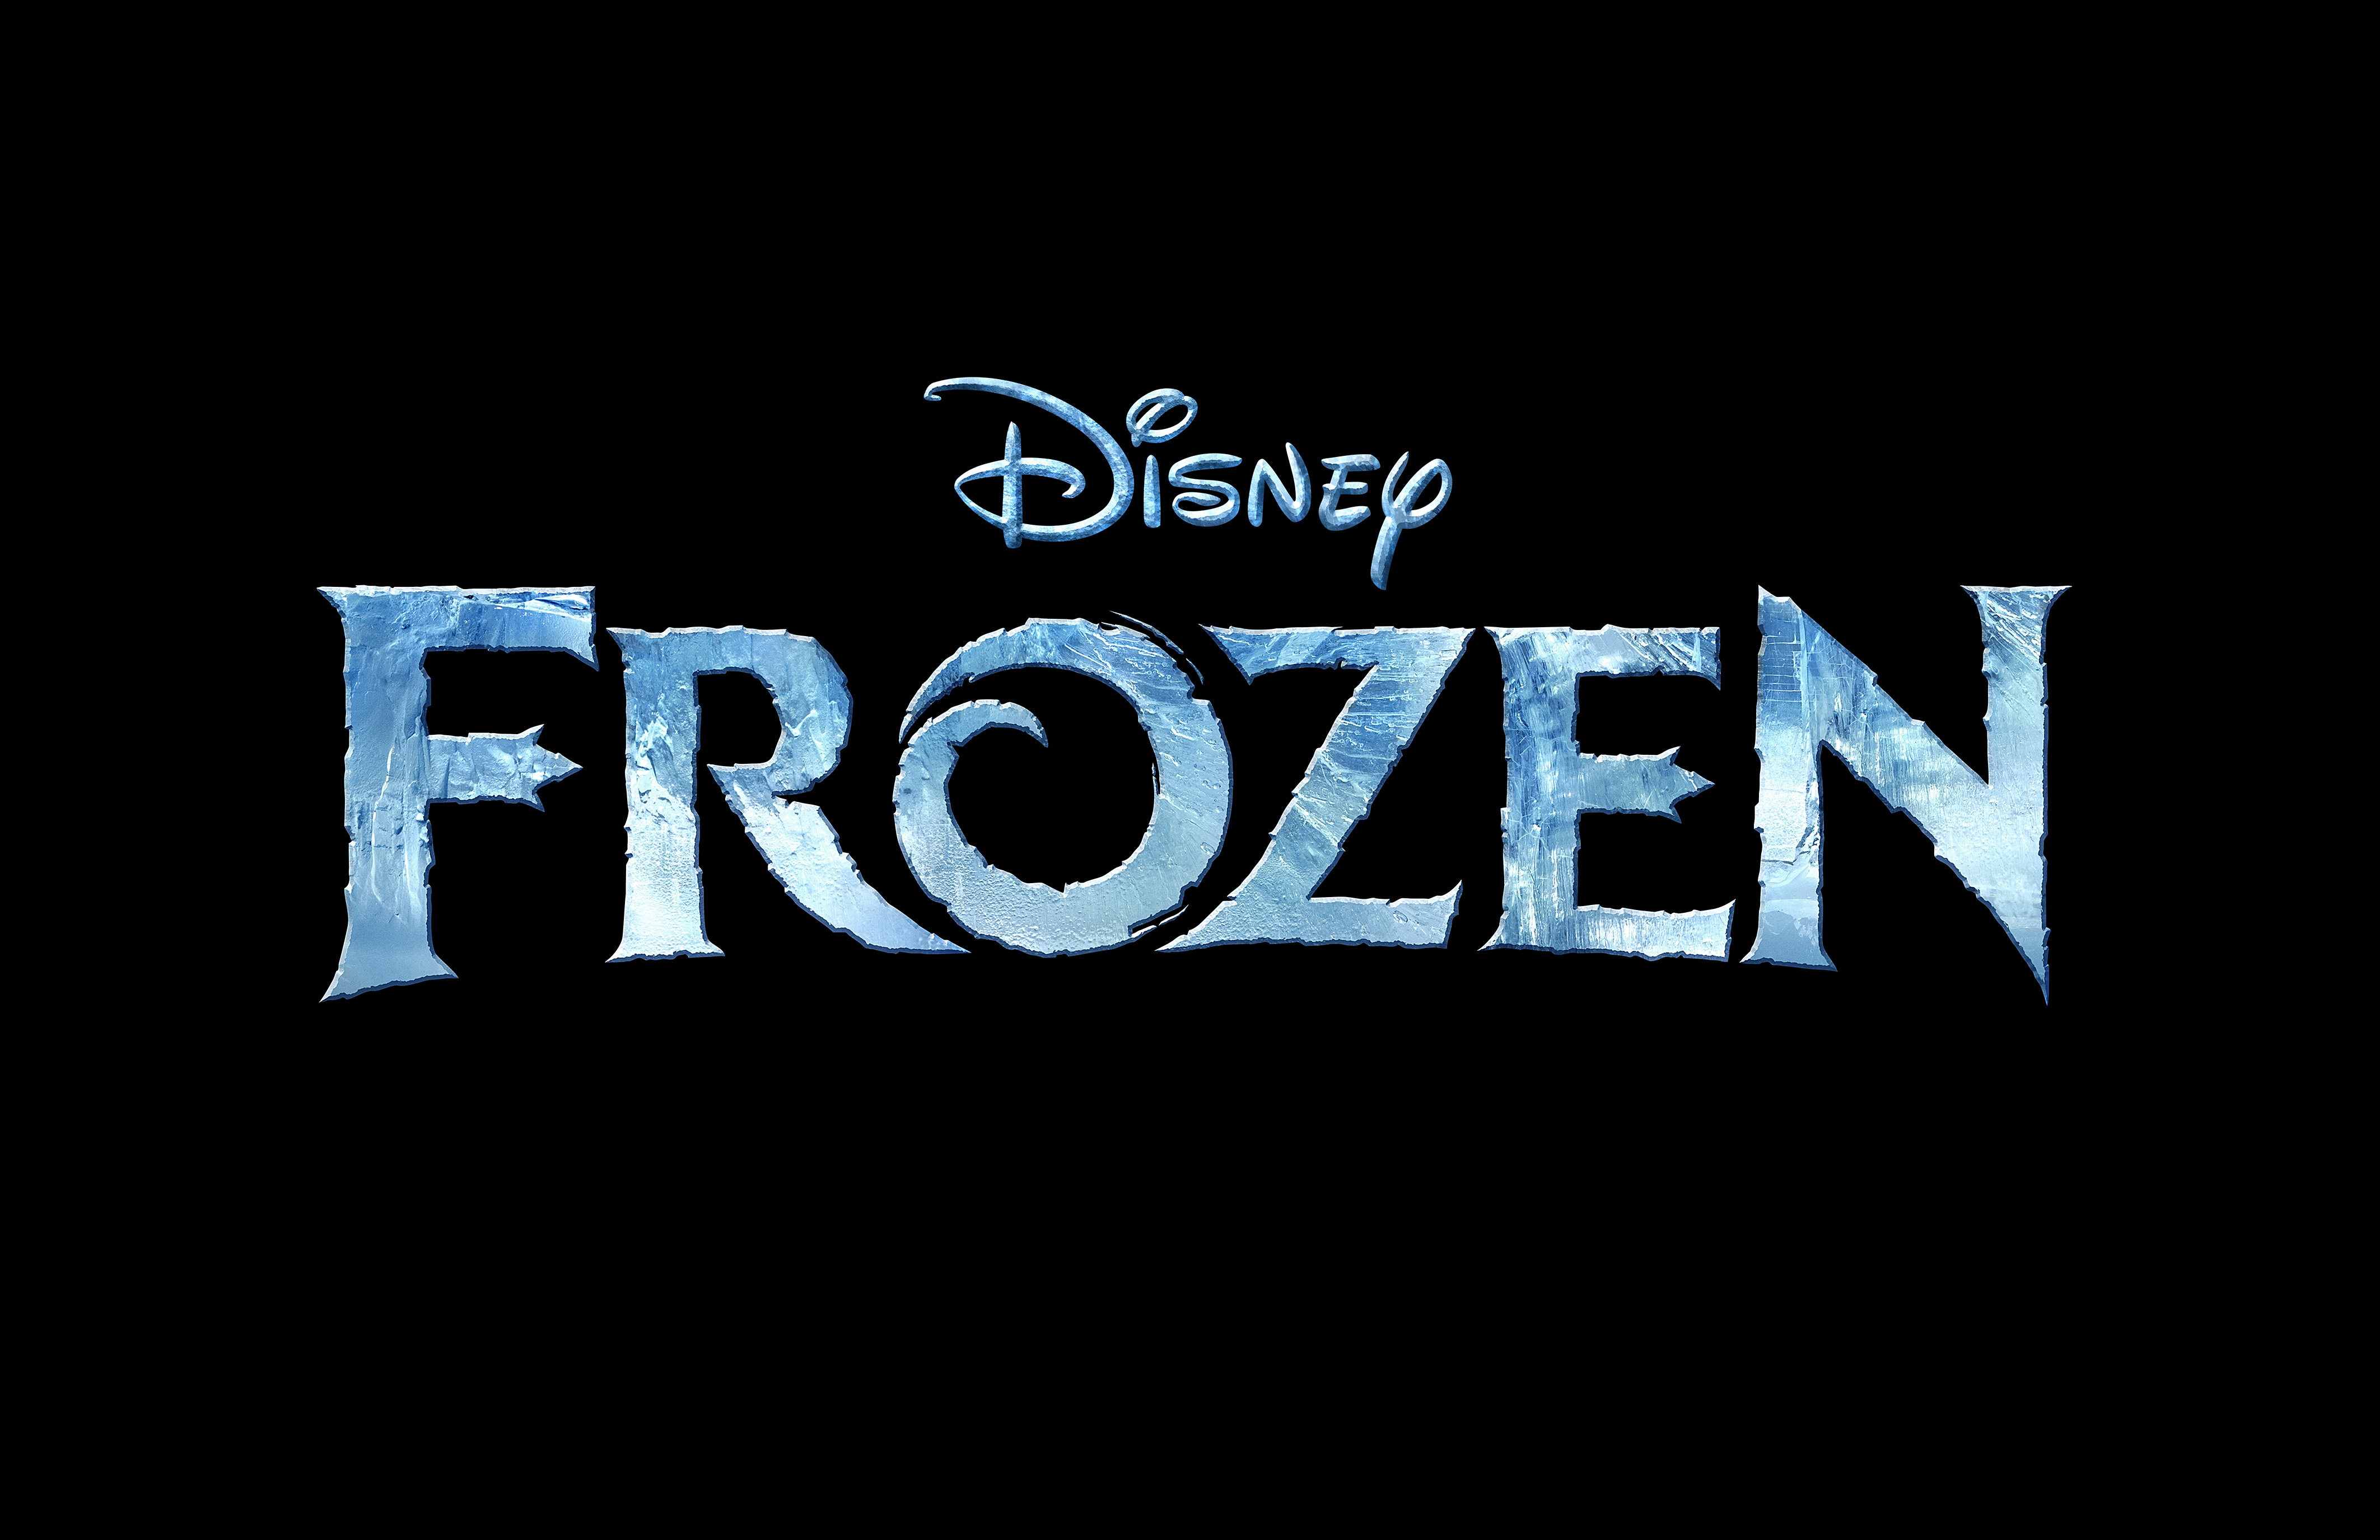 Disney's Frozen wins two Academy Awards® & crosses $1 billion at global box office